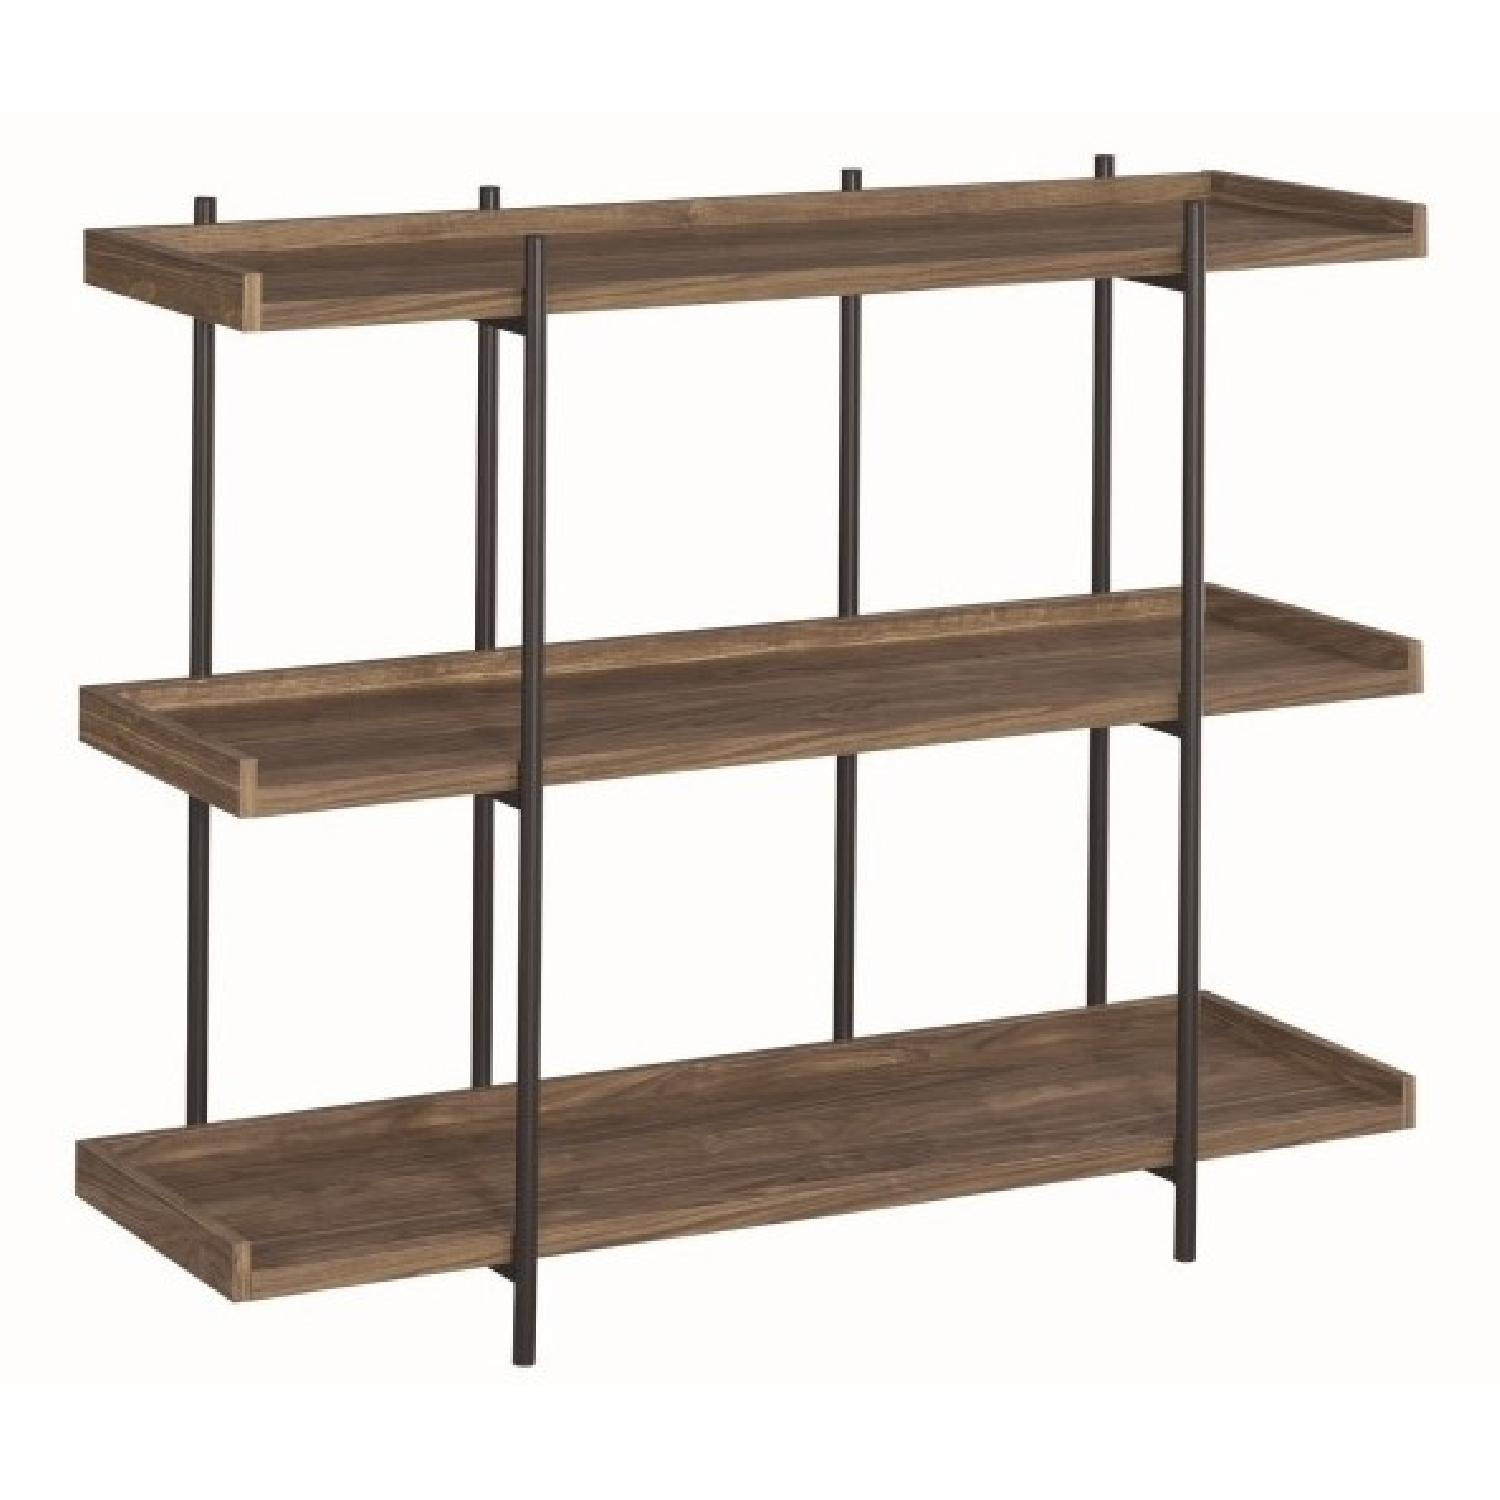 Industrial Style 5-Shelves Bookcase in Aged Walnut Finish - image-8